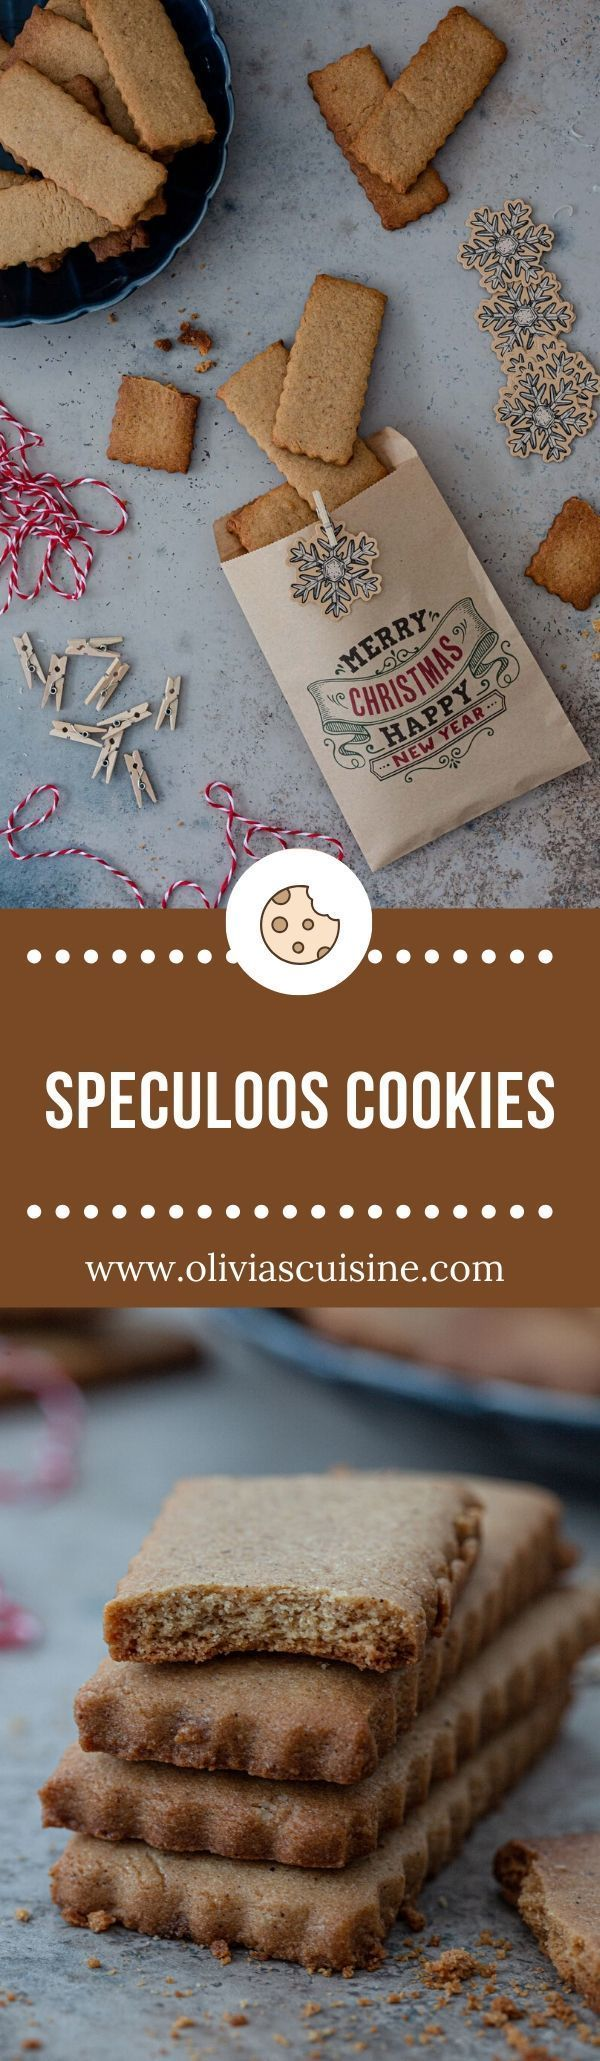 Speculoos Cookies | www.oliviascuisine.com | Speculoos cookies are a must-bake this holiday season! Slightly browned, thin and very crunchy, these spiced cookies are easy to make and even easier to eat. (Follow @oliviascuisine for more delicious recipes.) #speculoos #biscoff #cookies #speculaas #christmas